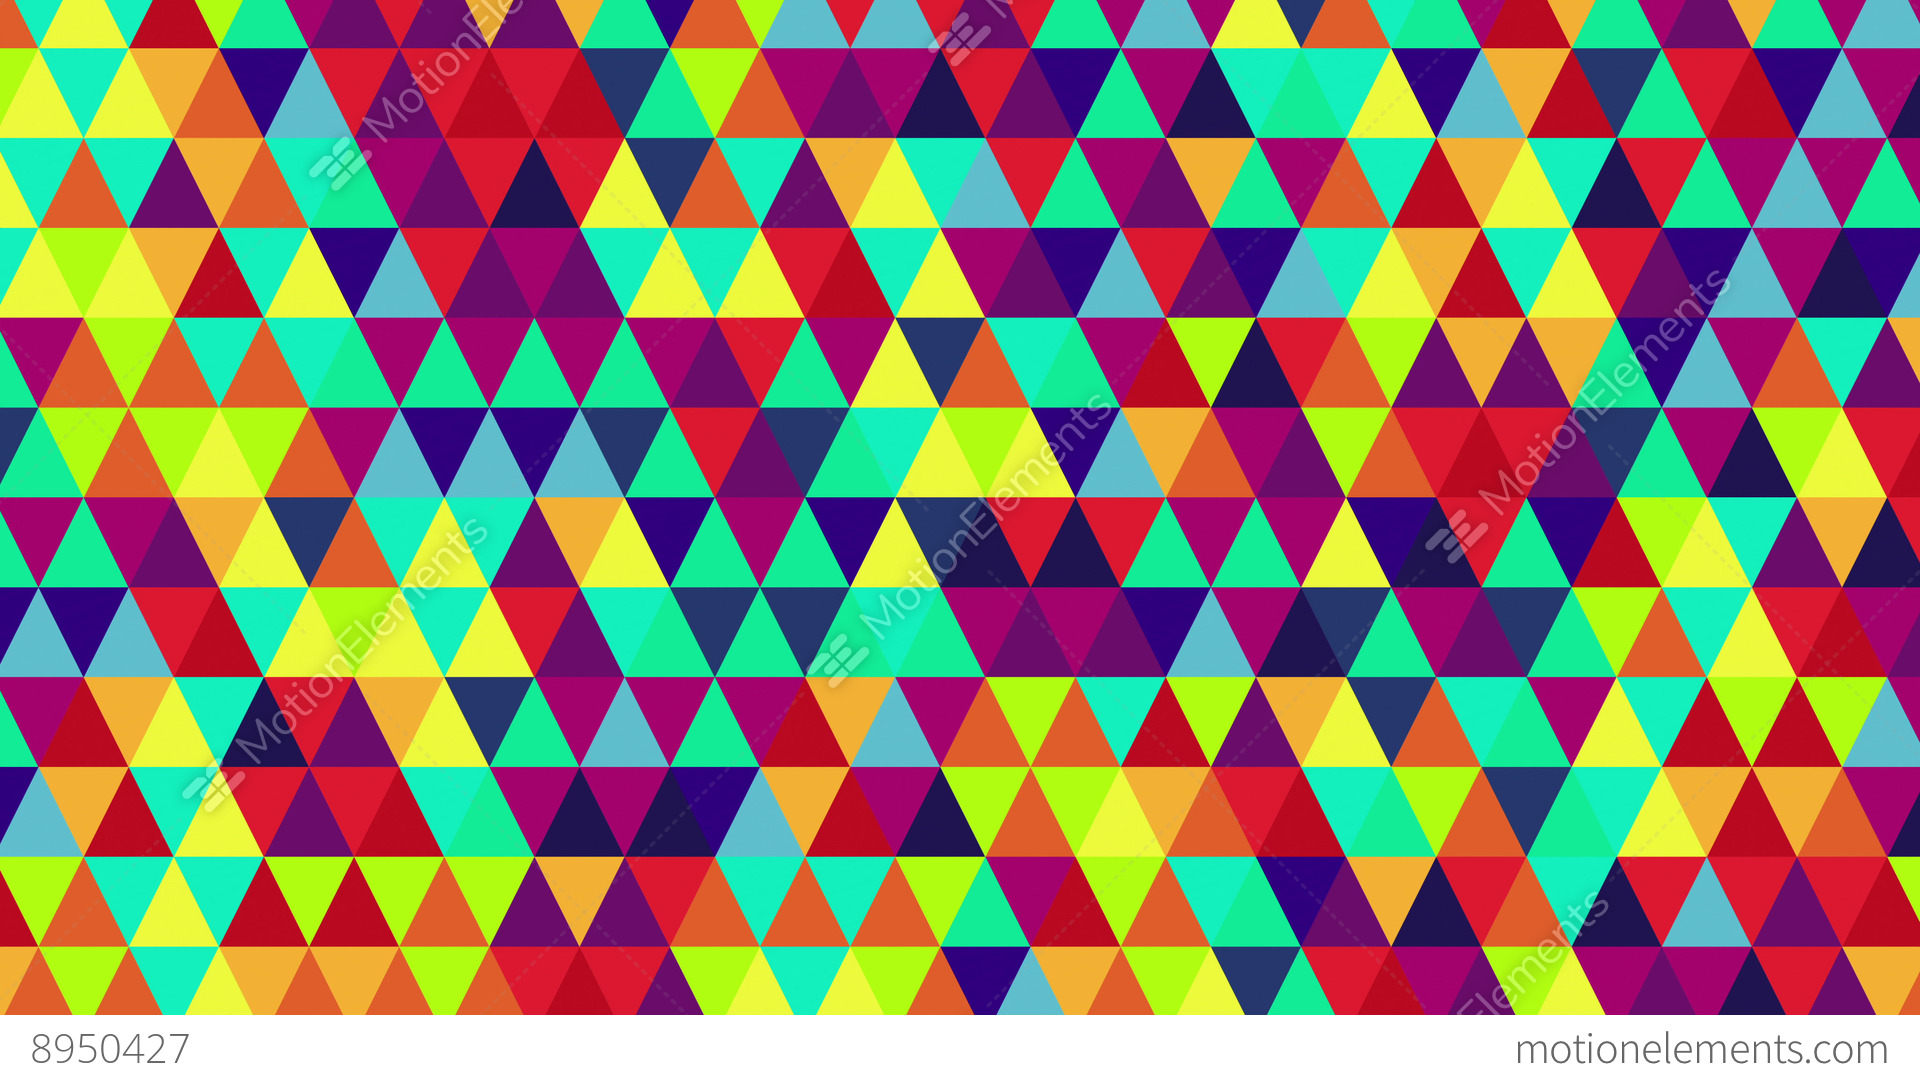 3d Rainbow Psychedeli Wallpaper Bright Color Triangles Seamless Loop Geometric Background